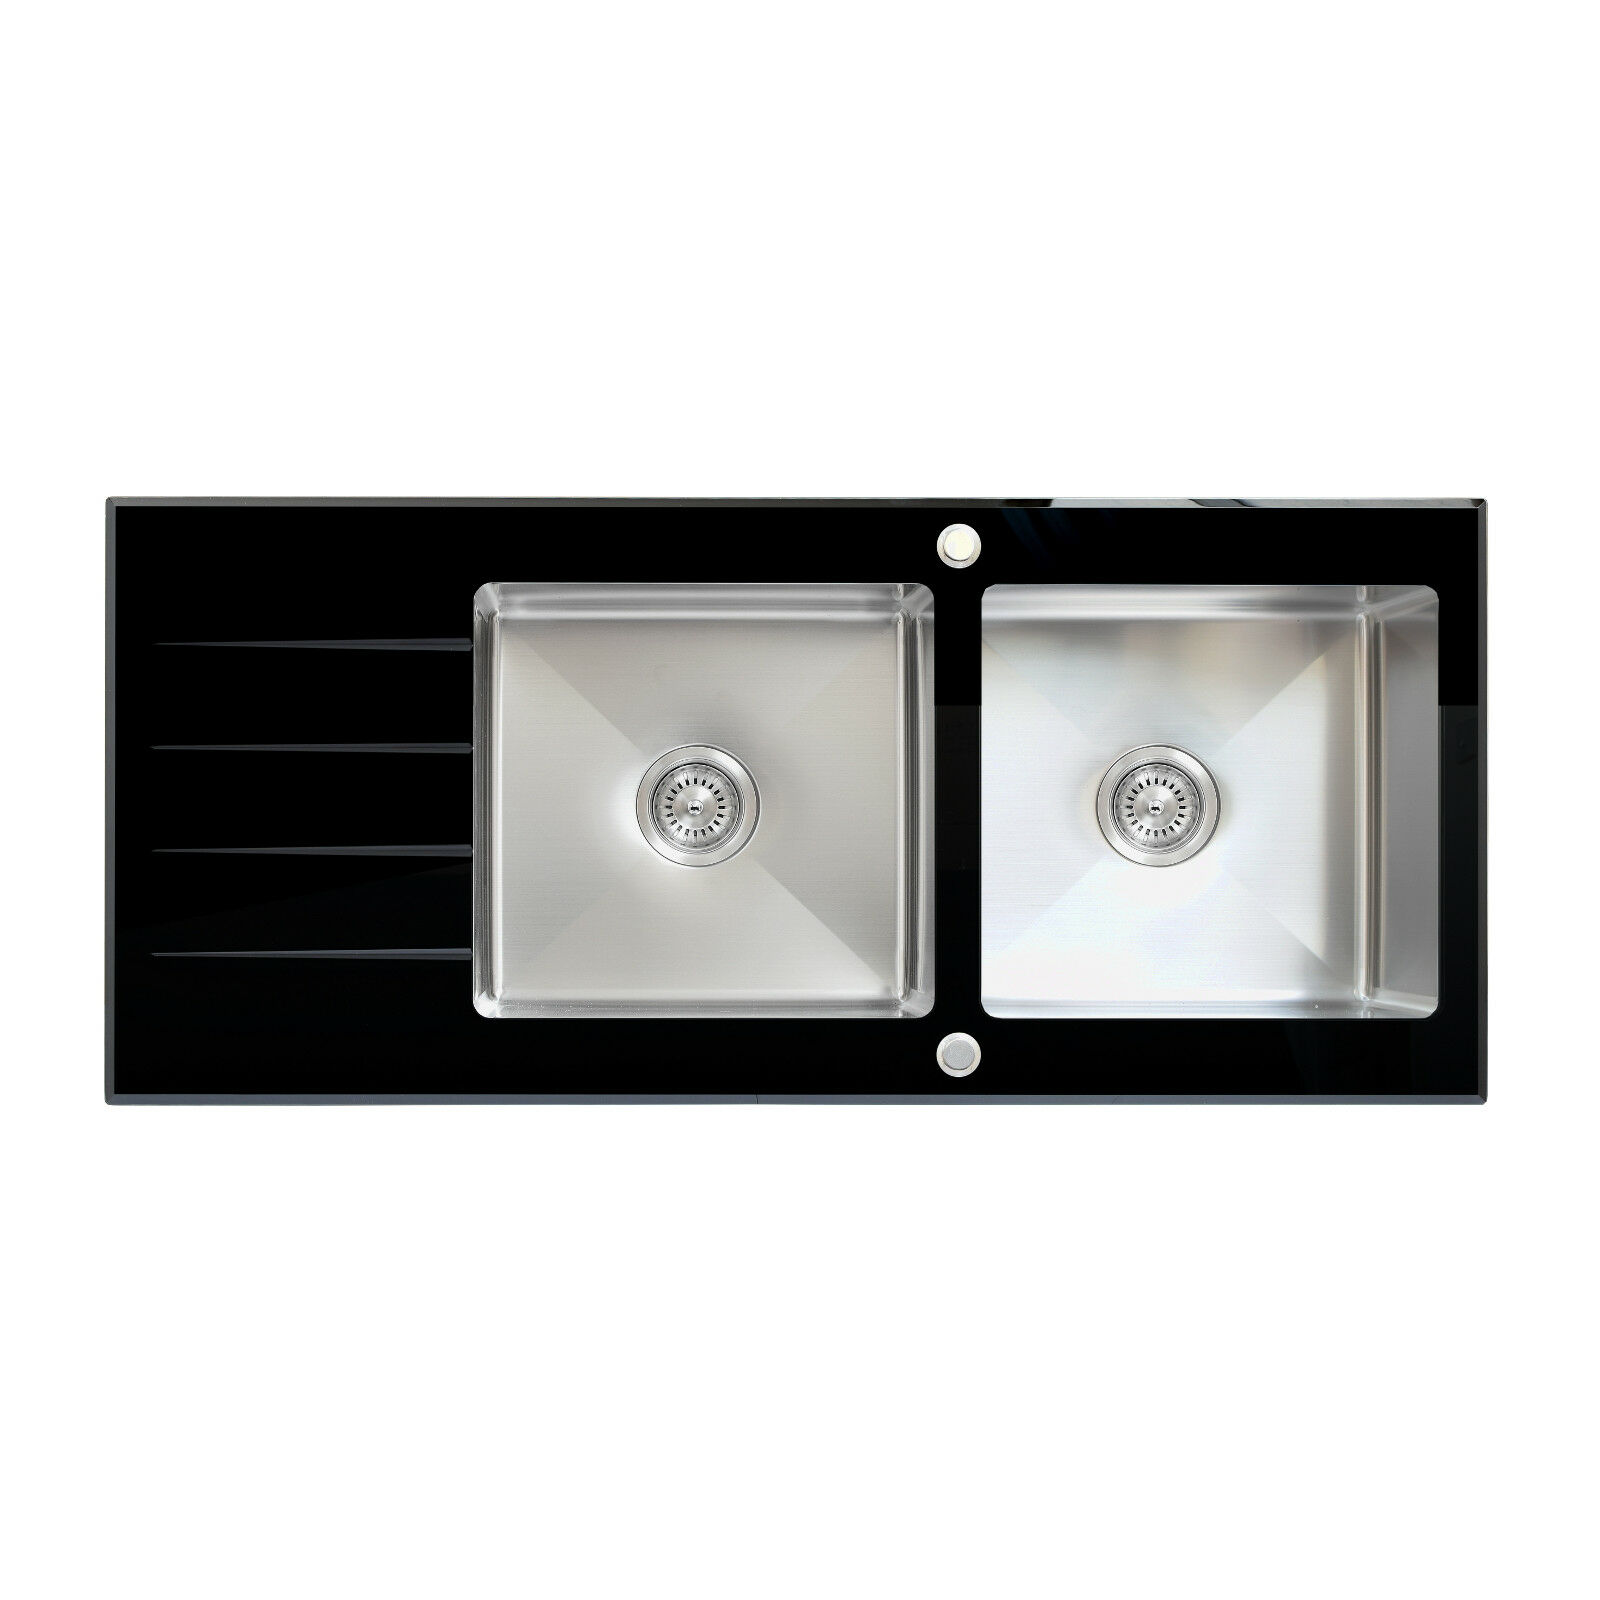 Enki Black Glass Kitchen Sink 2 0 Two Bowl Drainboard Inset Stainless Steel 1 Of 6free